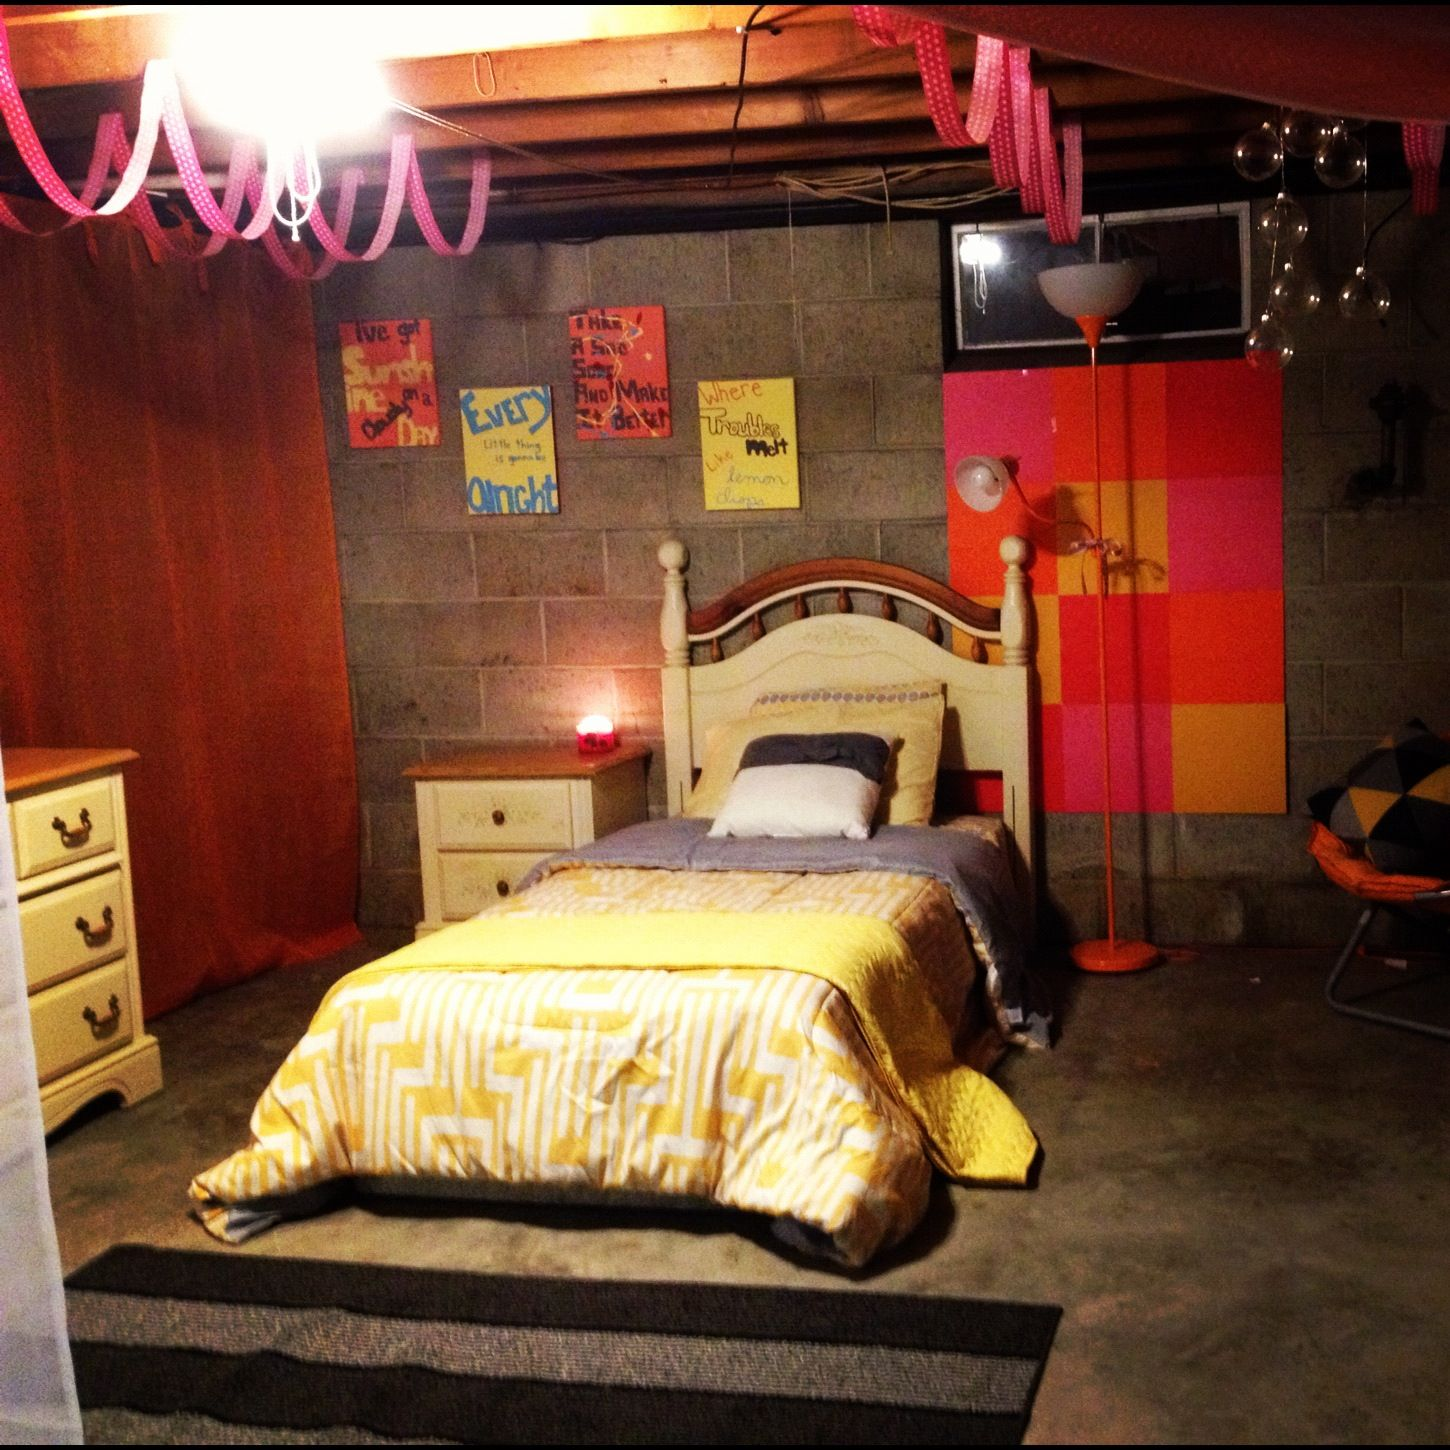 Basement Bedroom Ideas For Teenagers Basement Bedroom Cool Idea For Those Who Can 39t Afford To